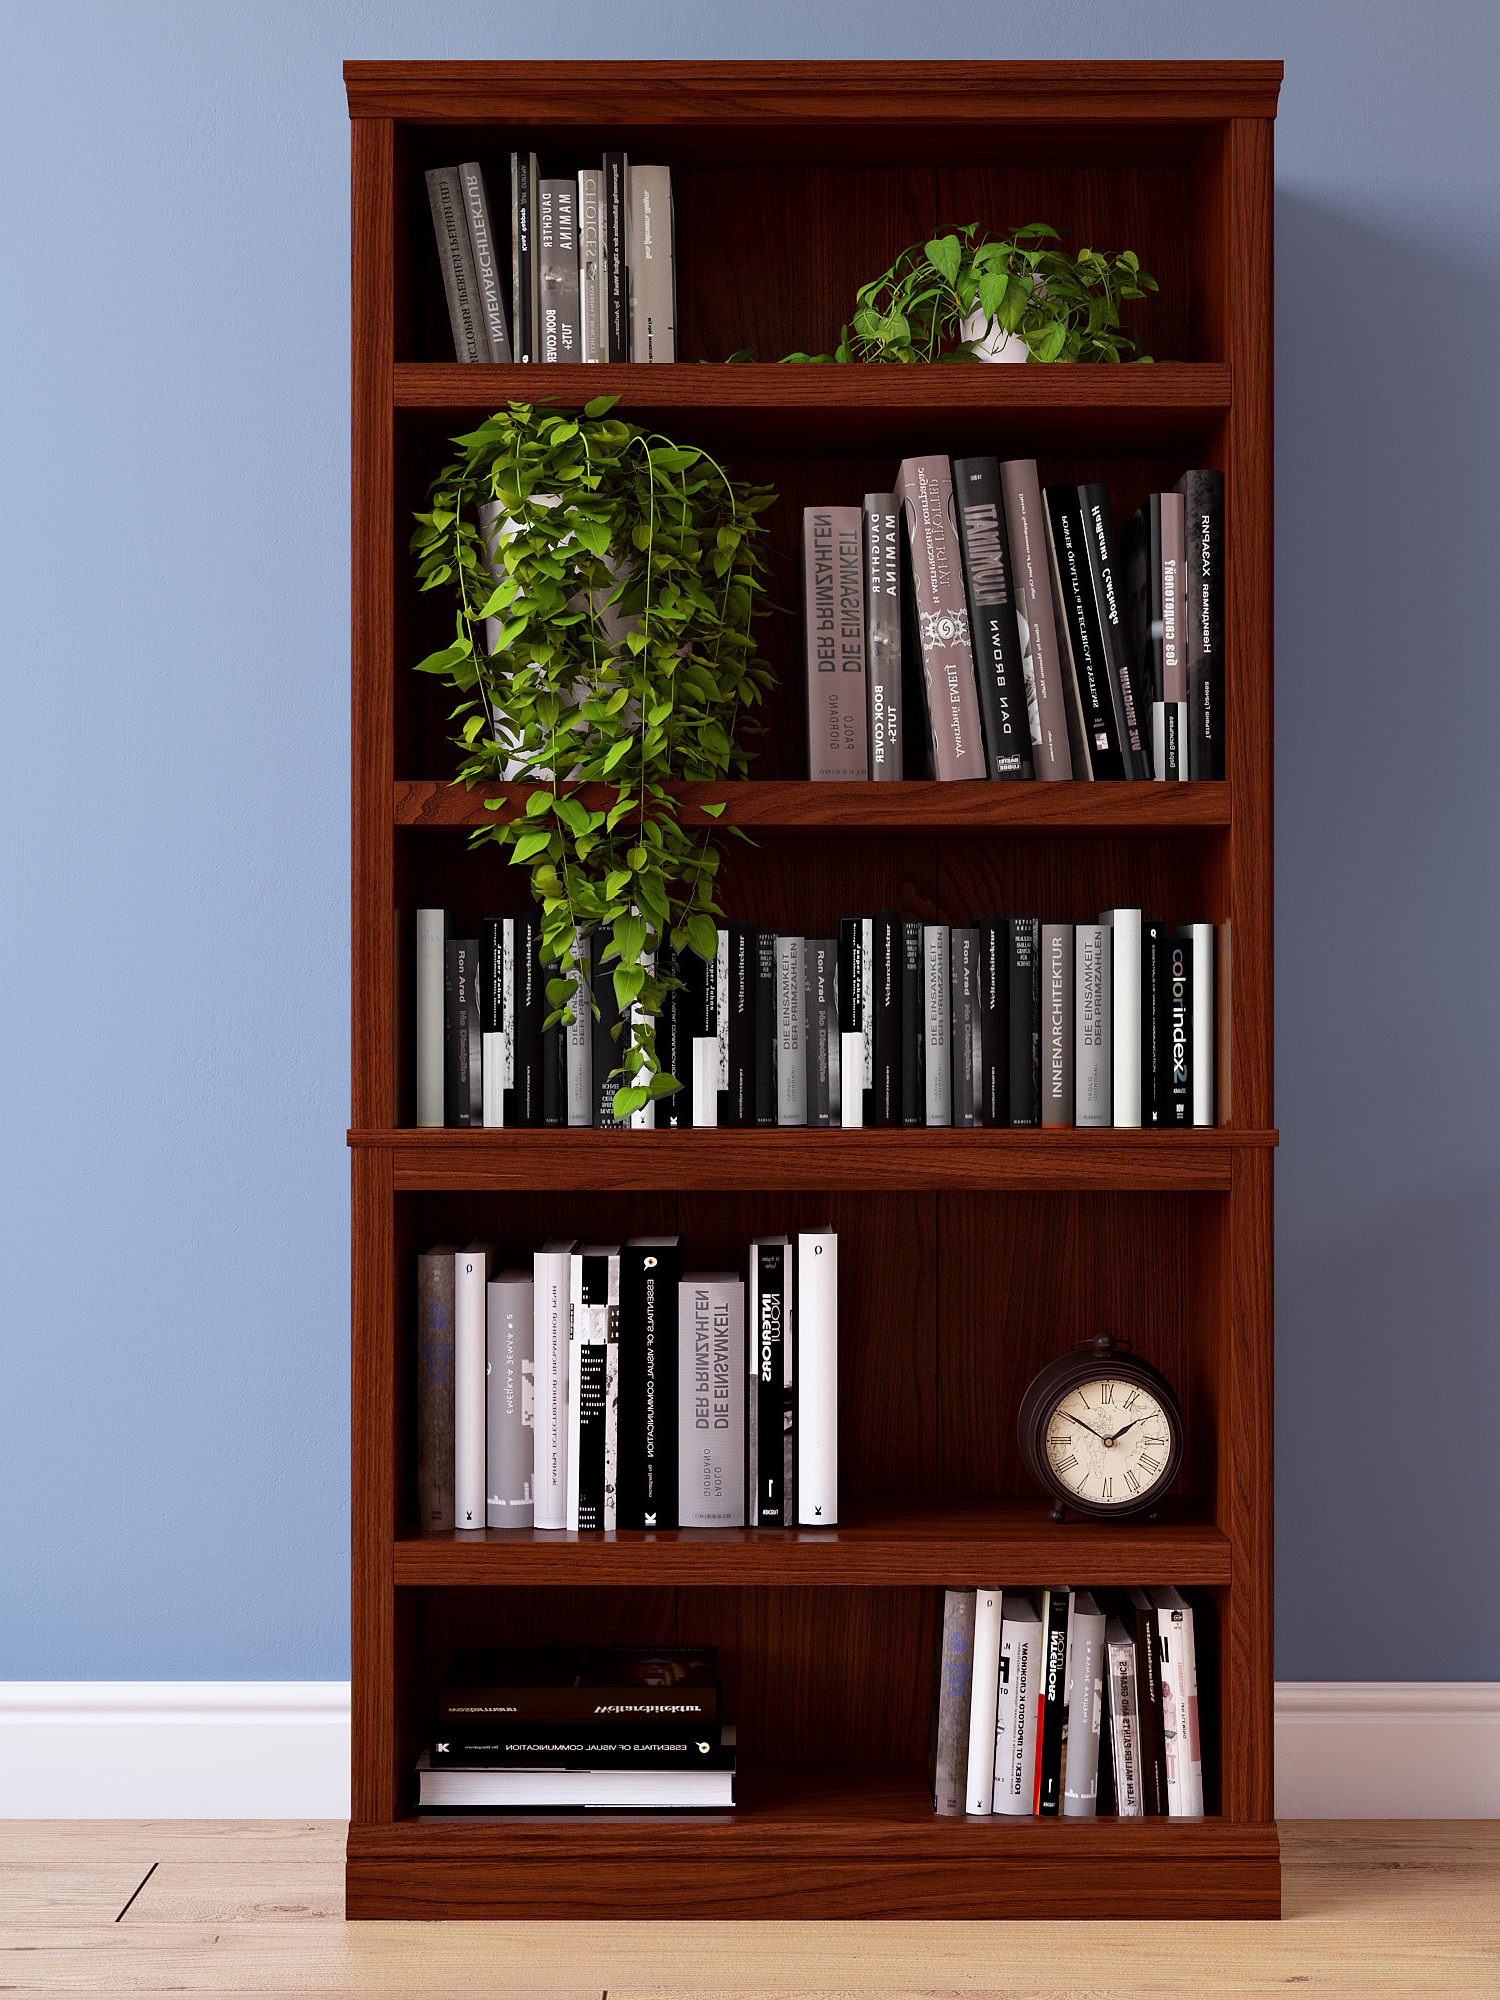 Abigail Standard Bookcases Intended For Current Abigail Standard Bookcase (Gallery 8 of 20)